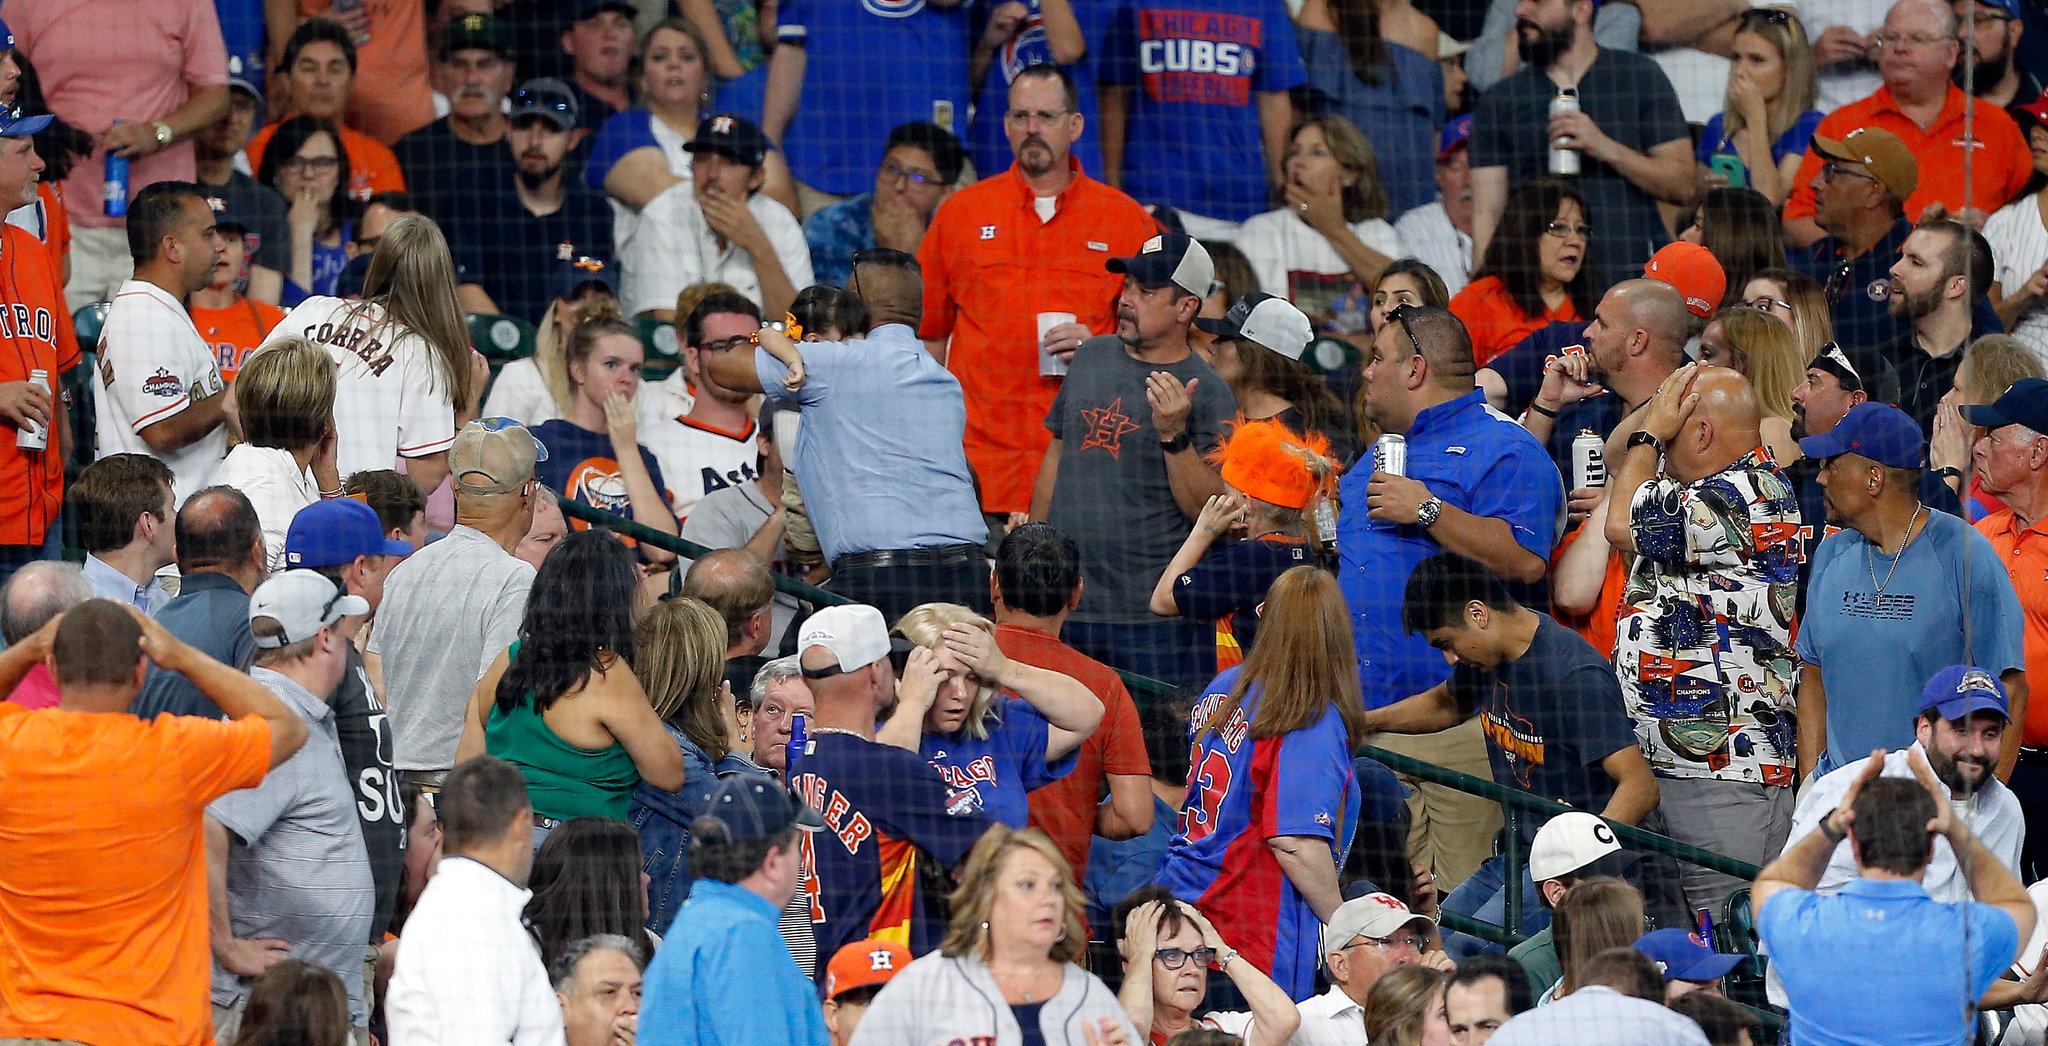 baseball foul balls are thrown into th crowd